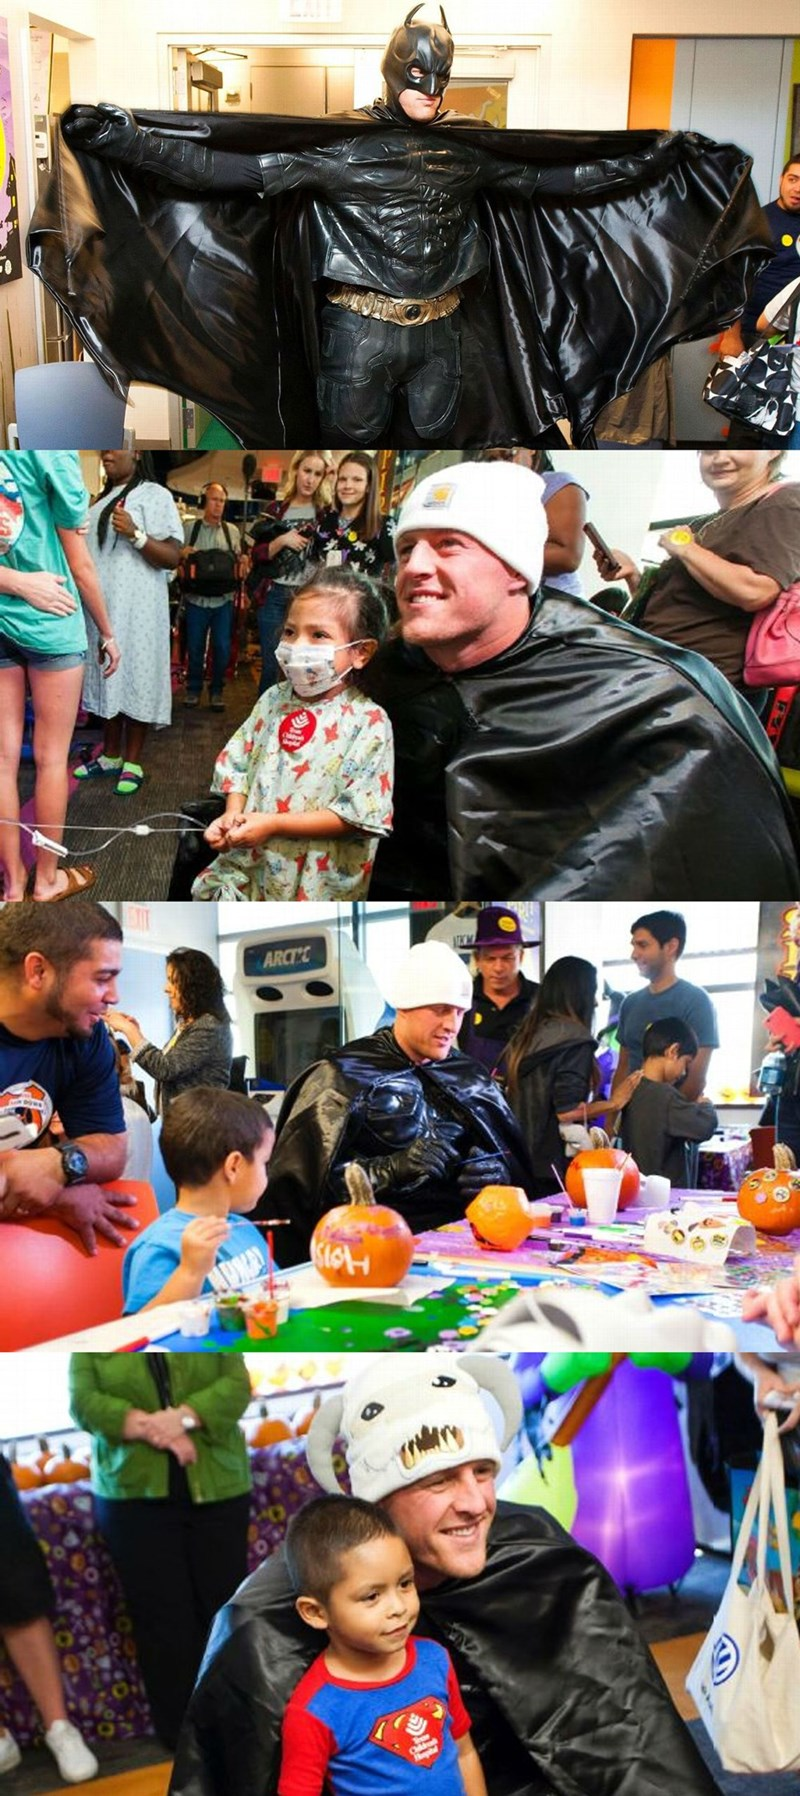 batman superheroes Texans' J.J. Watt Surprised Kids in a Hospital as Batman